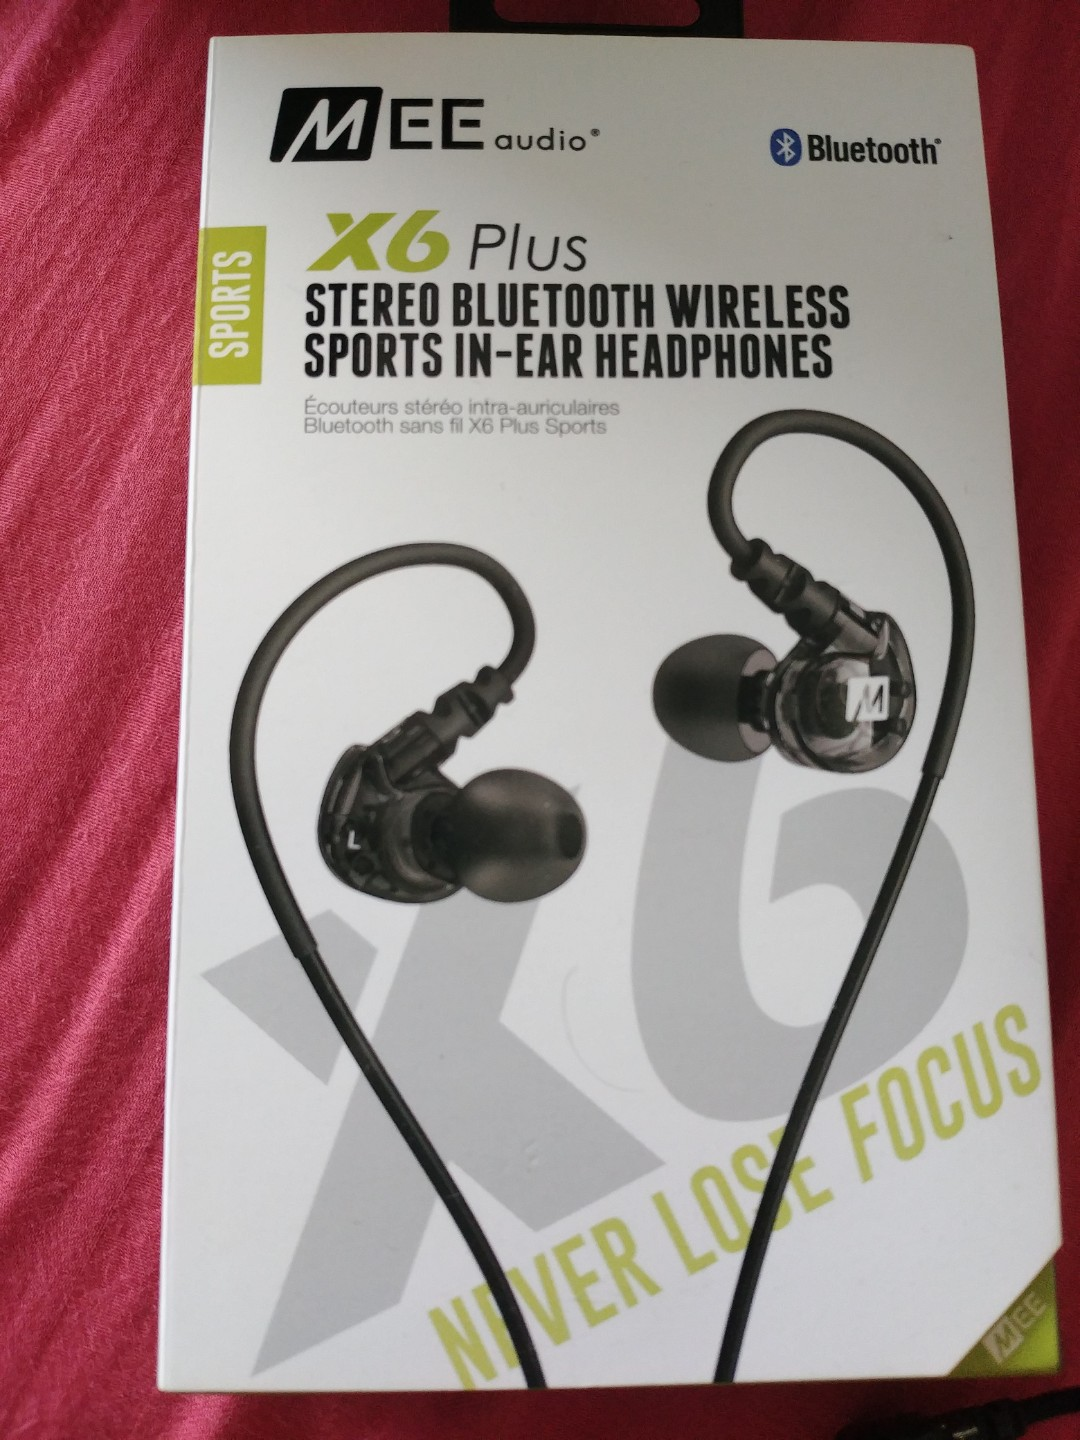 Mee Audio X6 plus Bluetooth sports in ear headphones